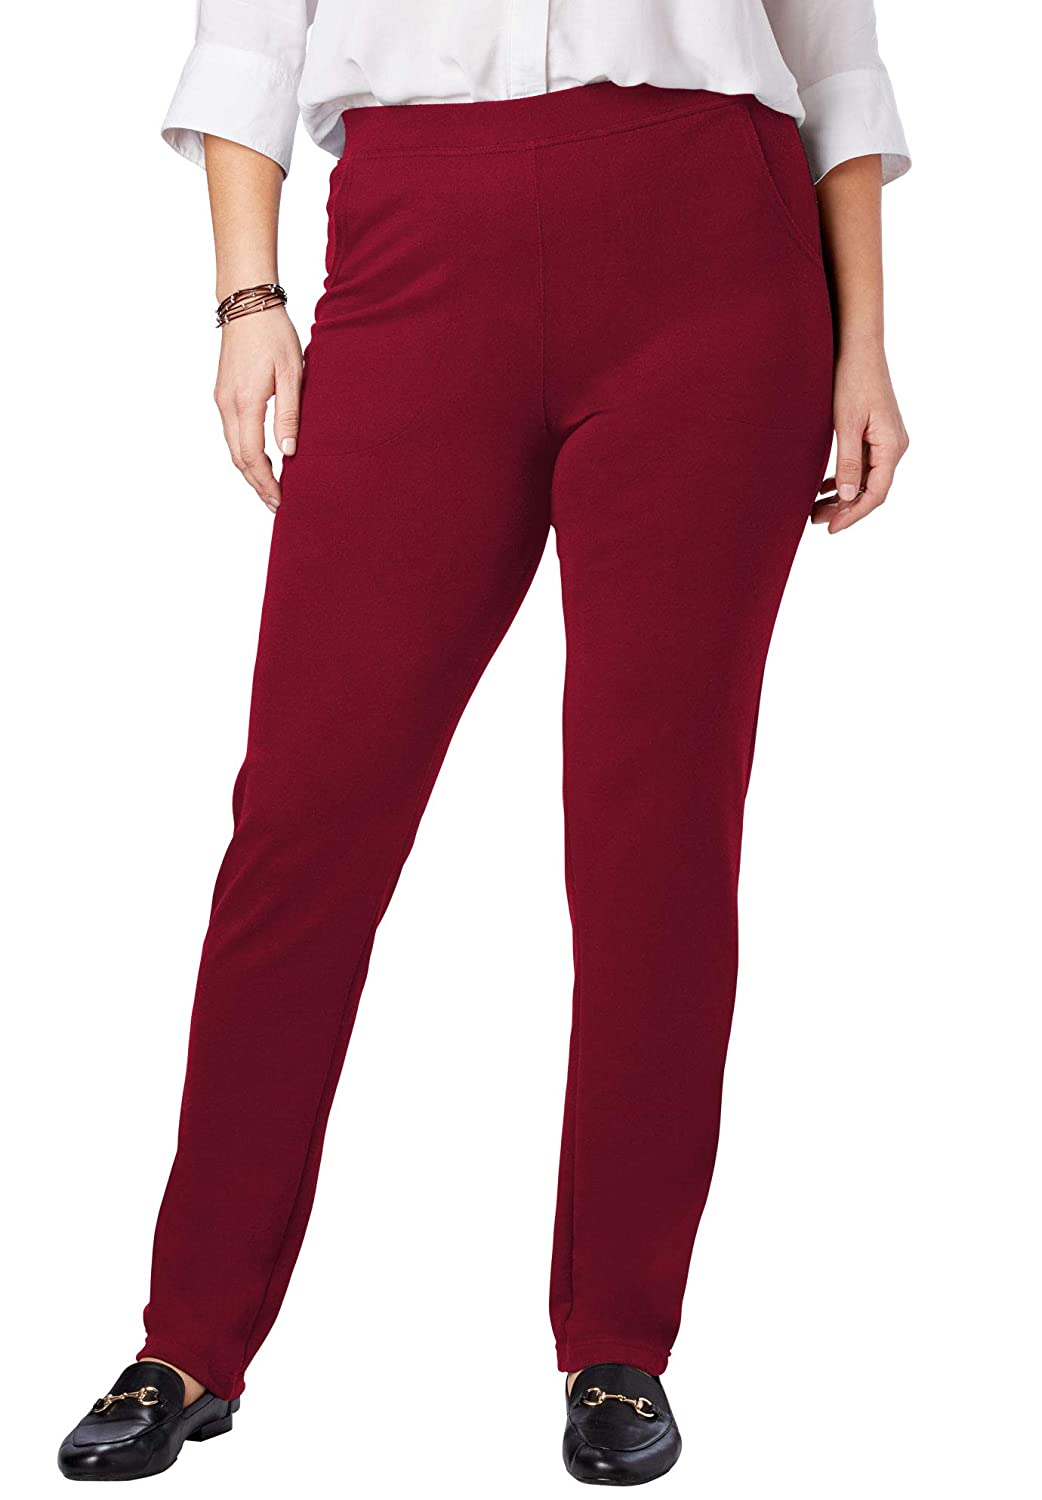 Woman Within Womens Plus Size Tall Straight Leg Ponte Knit Pant